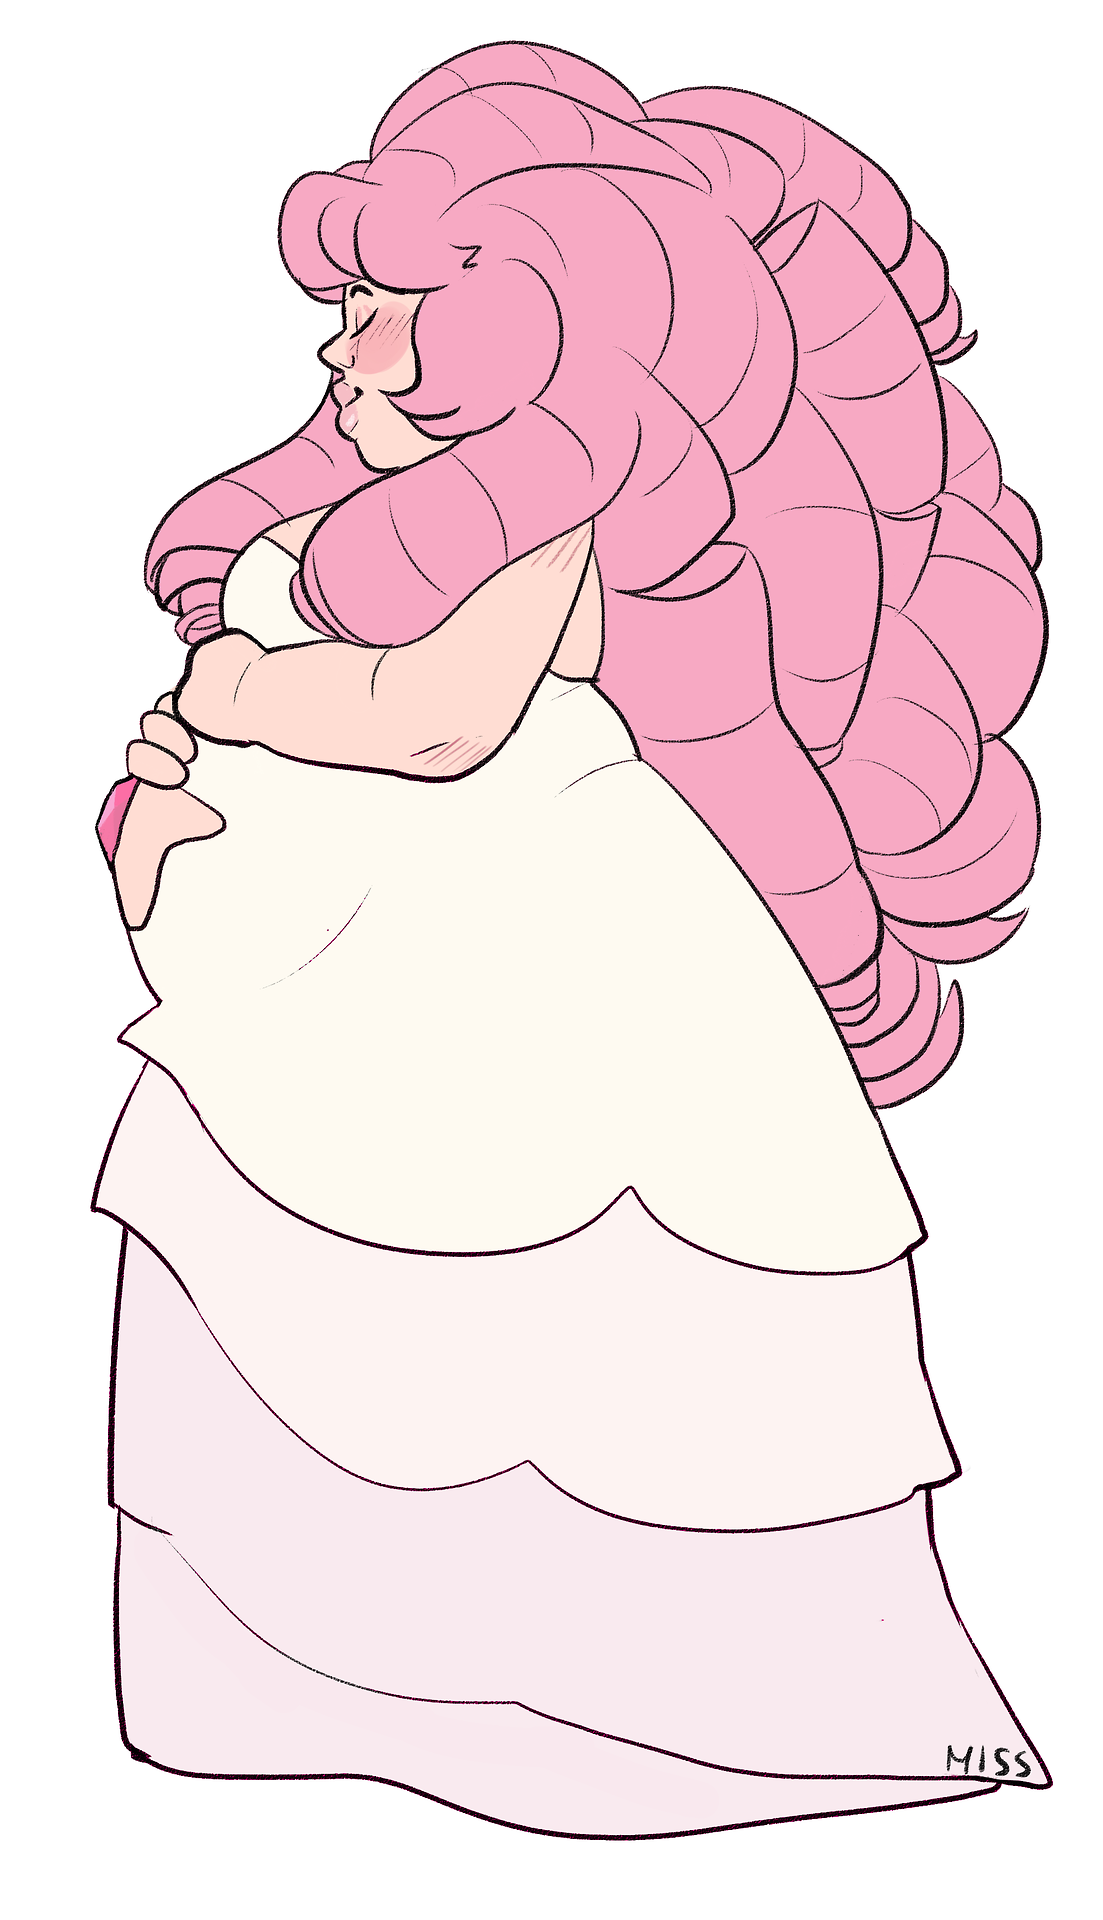 pregnant rose!! i just wanted so have something to post so i did this fast